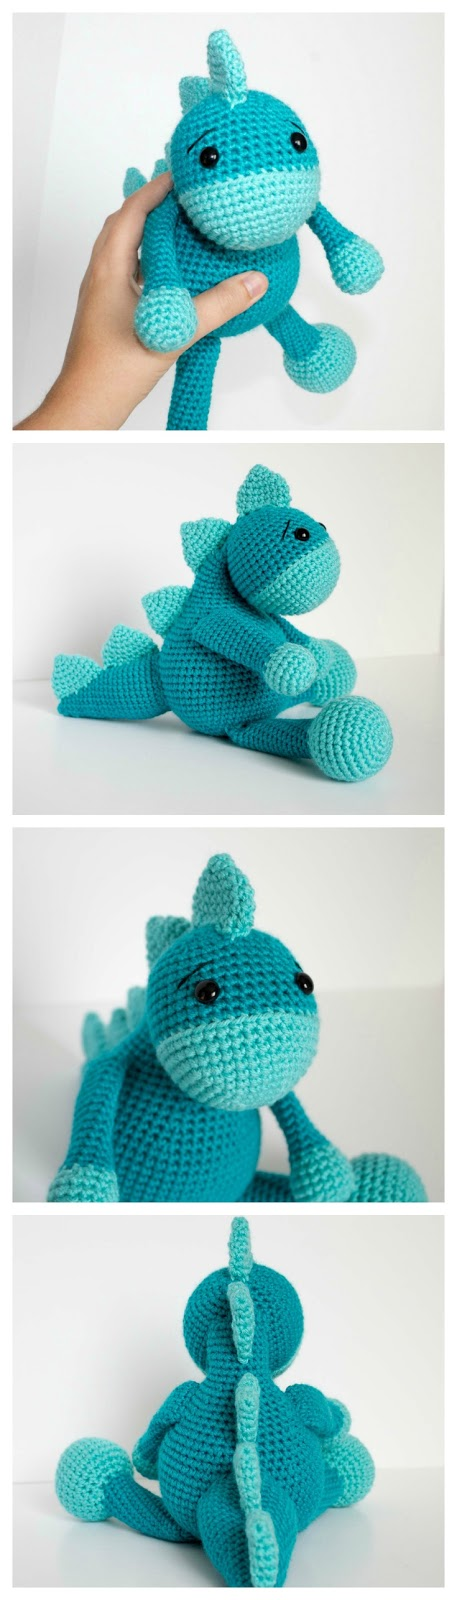 Free Crochet Dinosaur Pattern The Friendly Dino Thefriendlyredfox